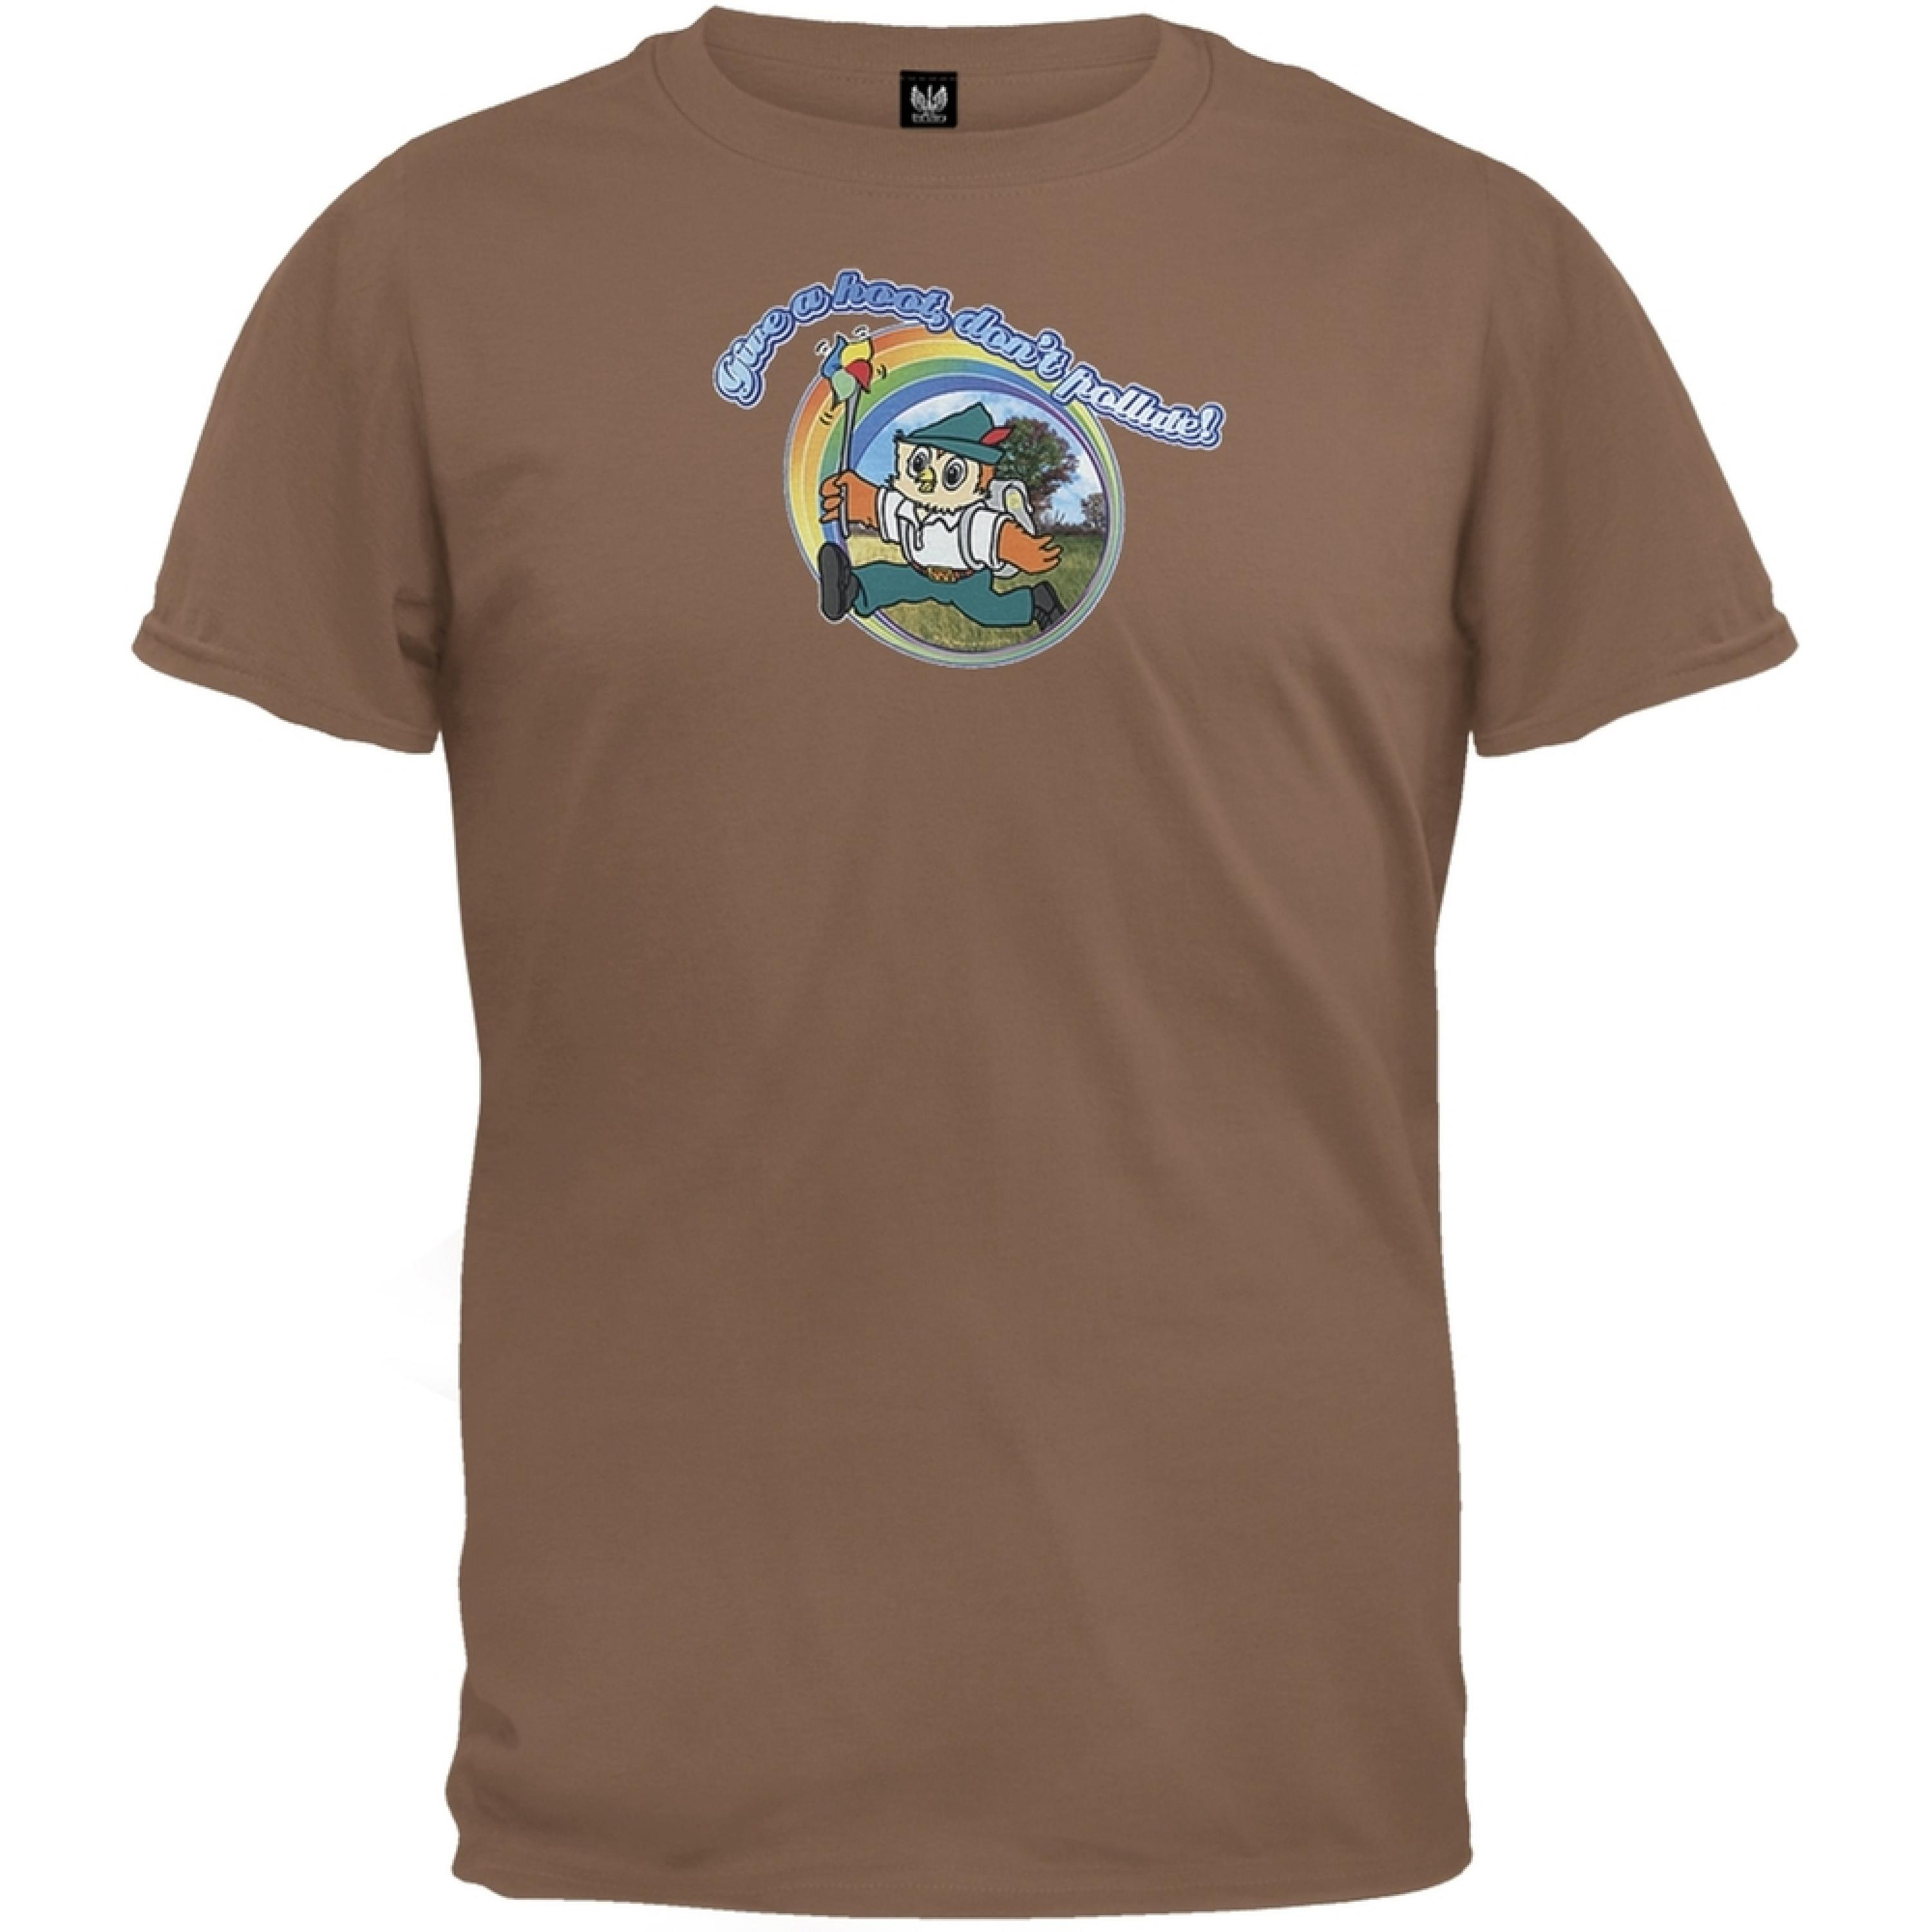 Woodsy Owl - Dont Pollute T-Shirt